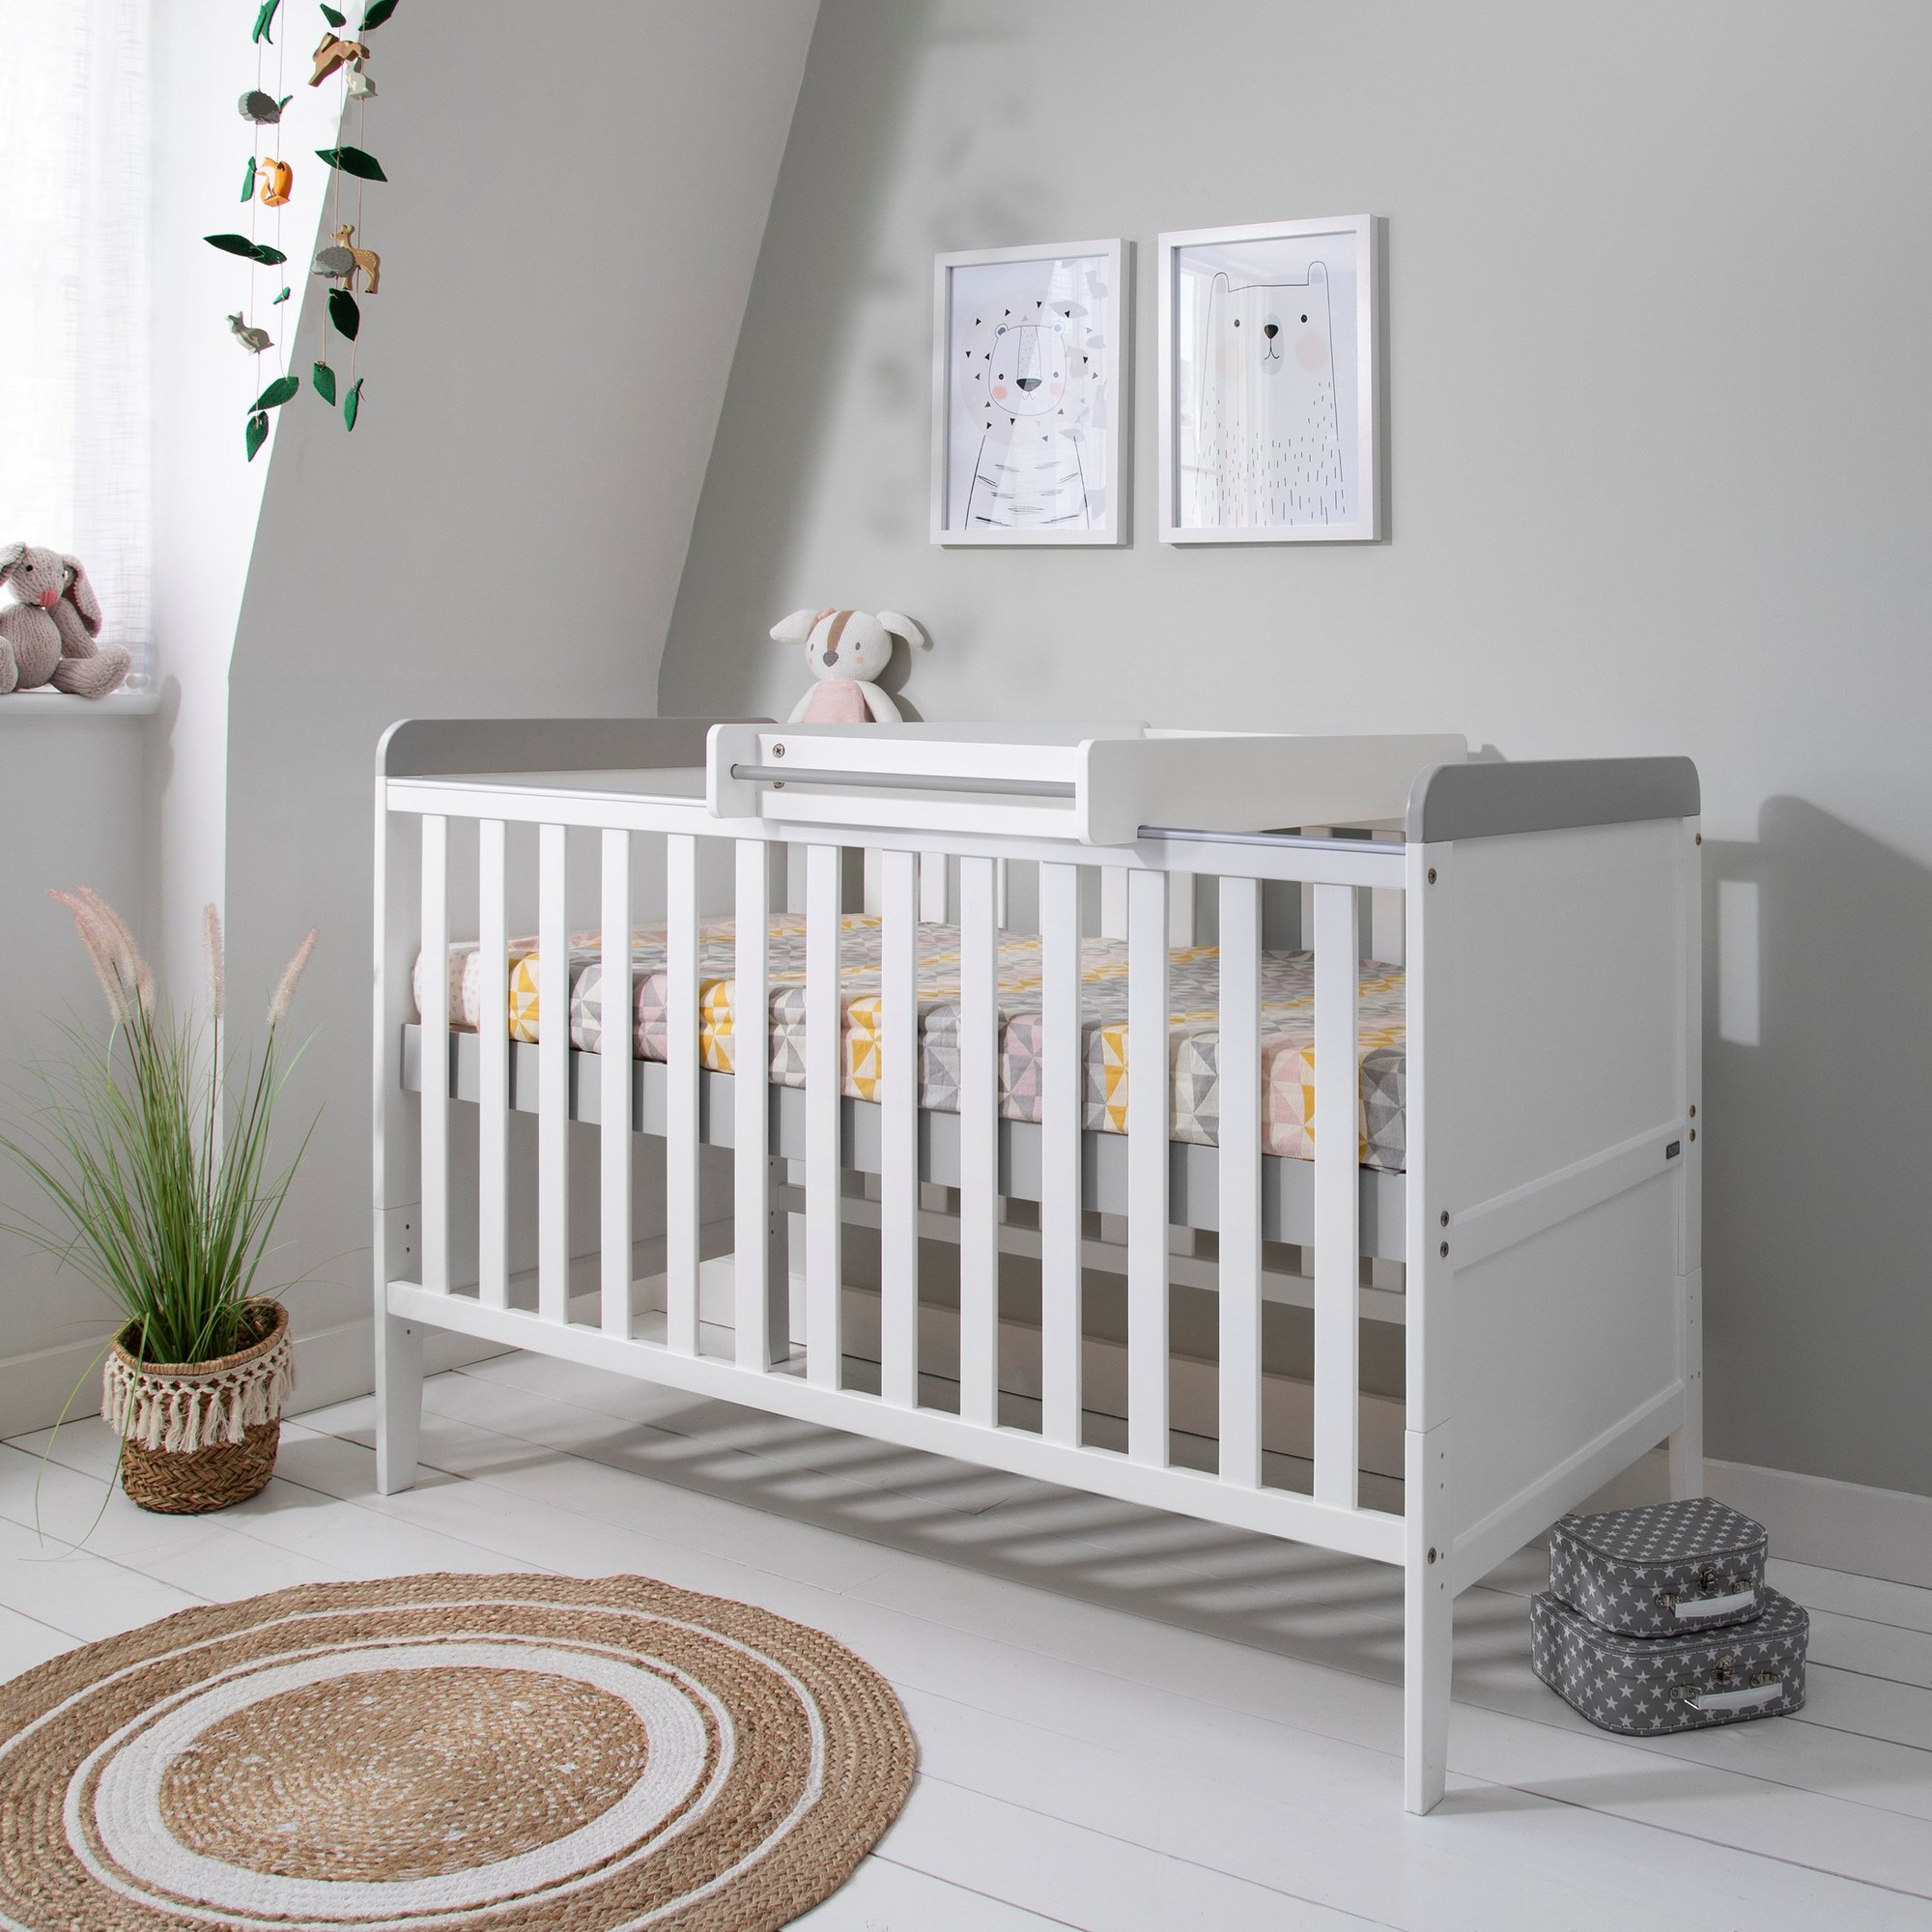 Image of Rio Cot Bed with Cot Top Changer